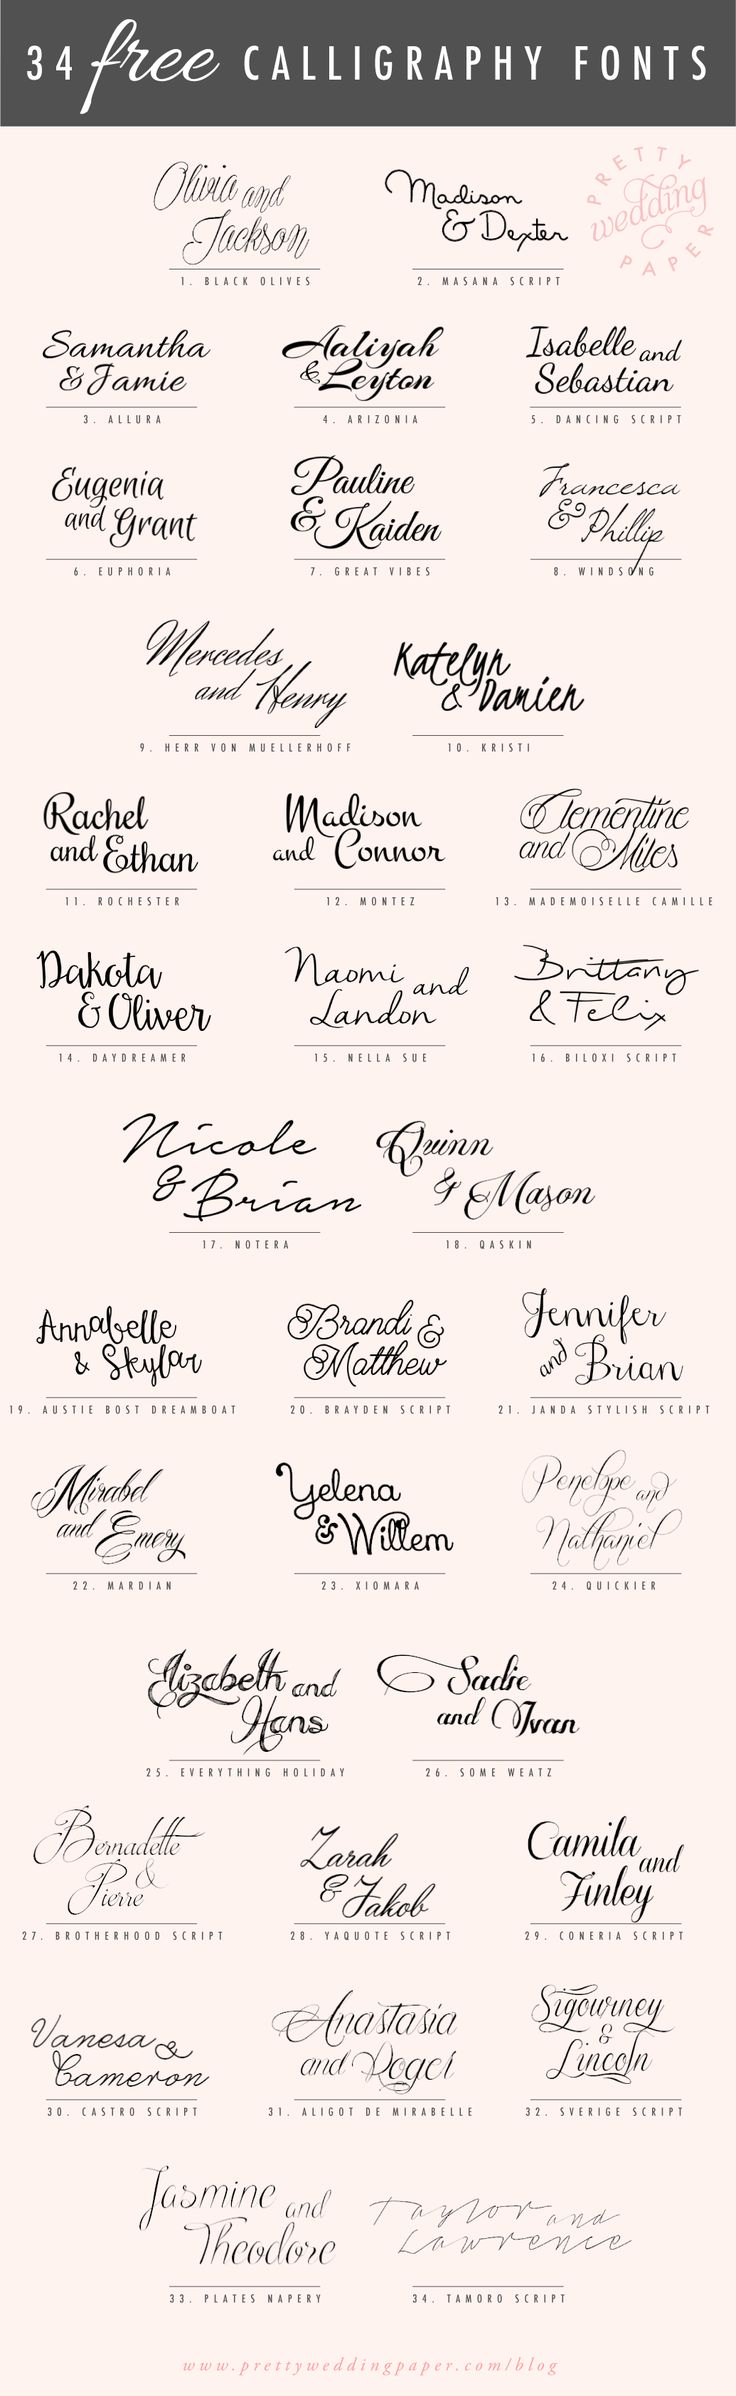 A follow-up to my post about amazing modern calligraphy fonts: here are 34 FREE calligraphic script fonts for hand-lettered, flowing wedding stationery! All the